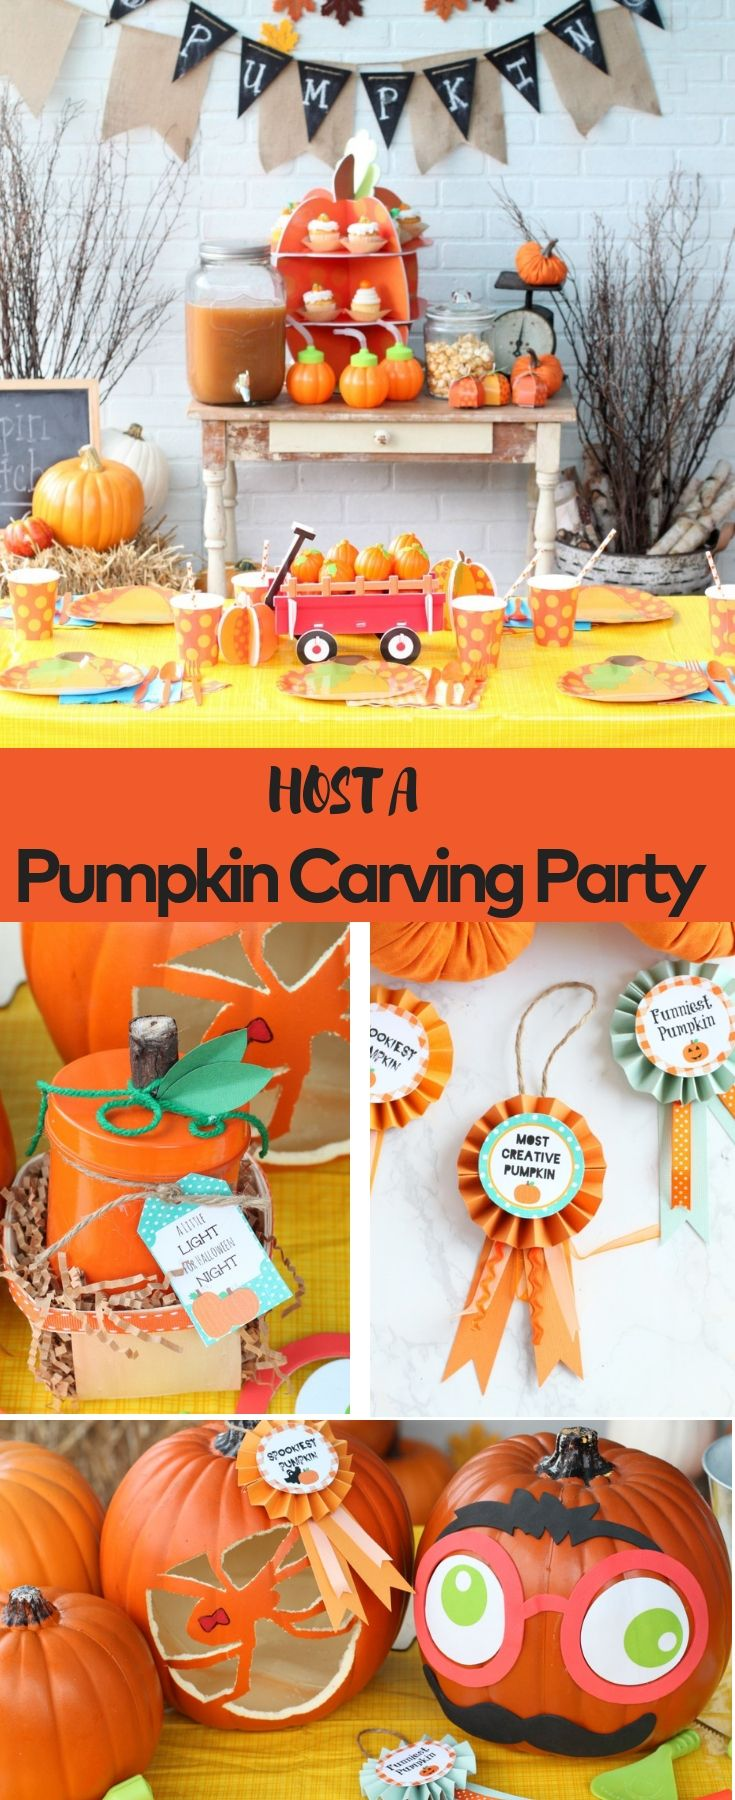 Host A Family Friendly Pumpkin Carving Party Full Of Fun A Yummy Recipe For Pumpkin Cider Pumpkin Carving Party Pumpkin Decorating Party Pumpkin Patch Party